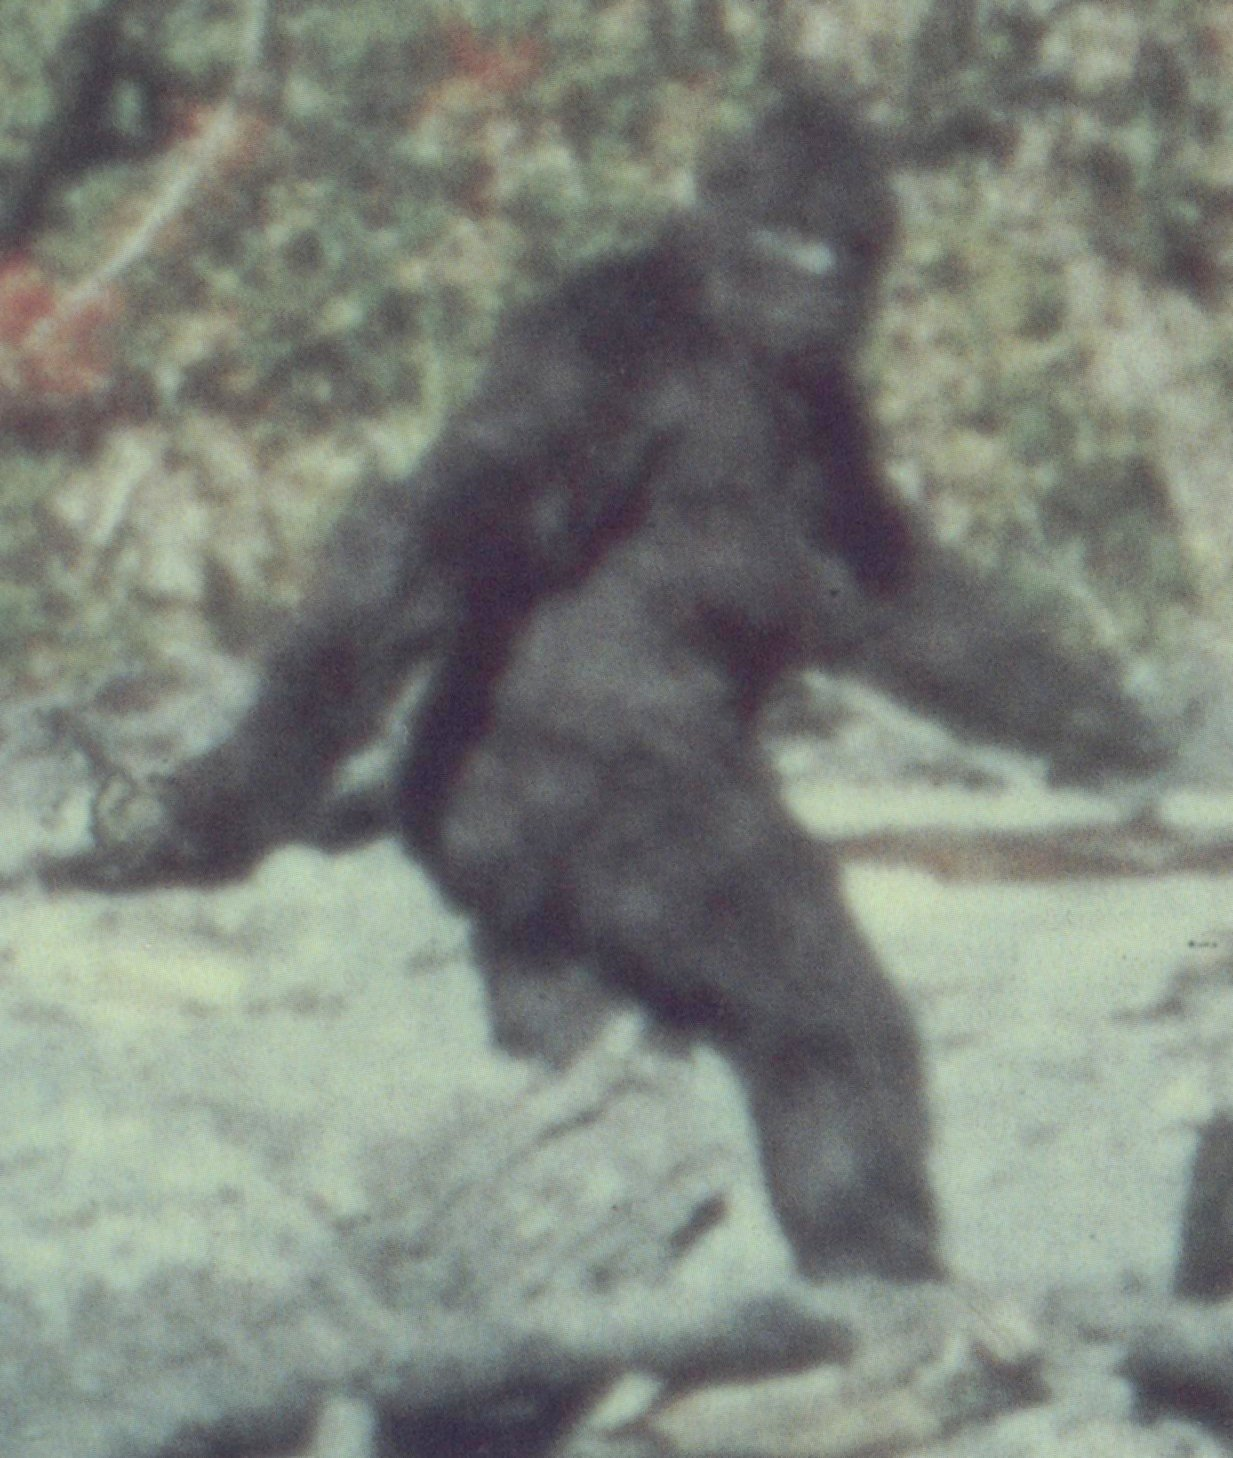 Bigfoot: Man-Monster or Myth? | Live Science